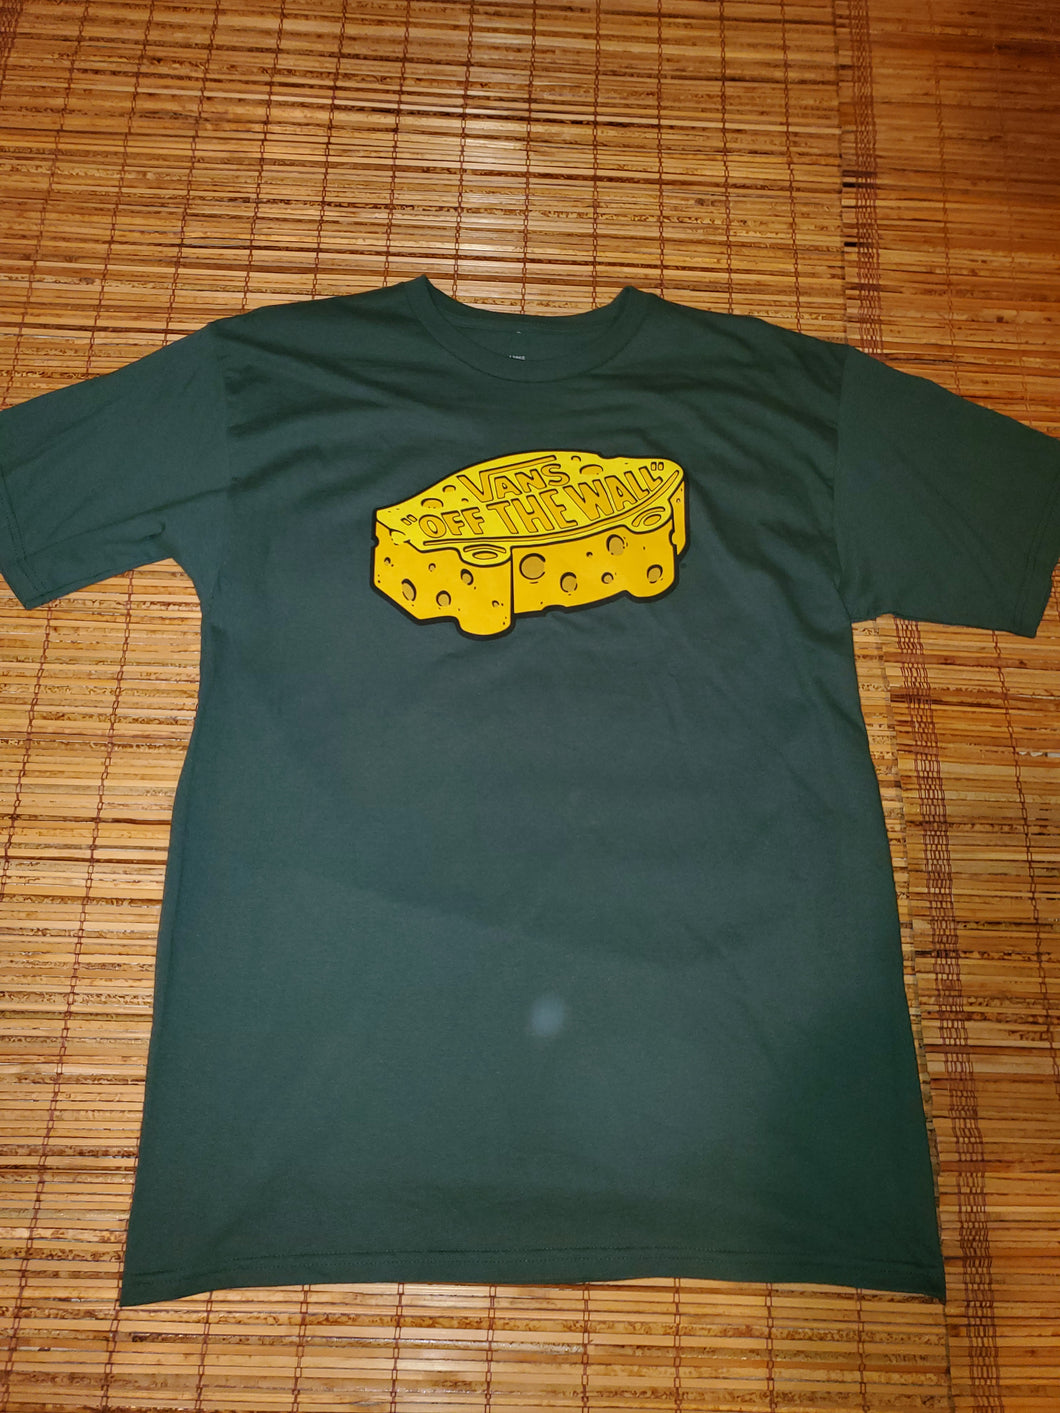 L - Vans Off The Wall Cheese Shirt